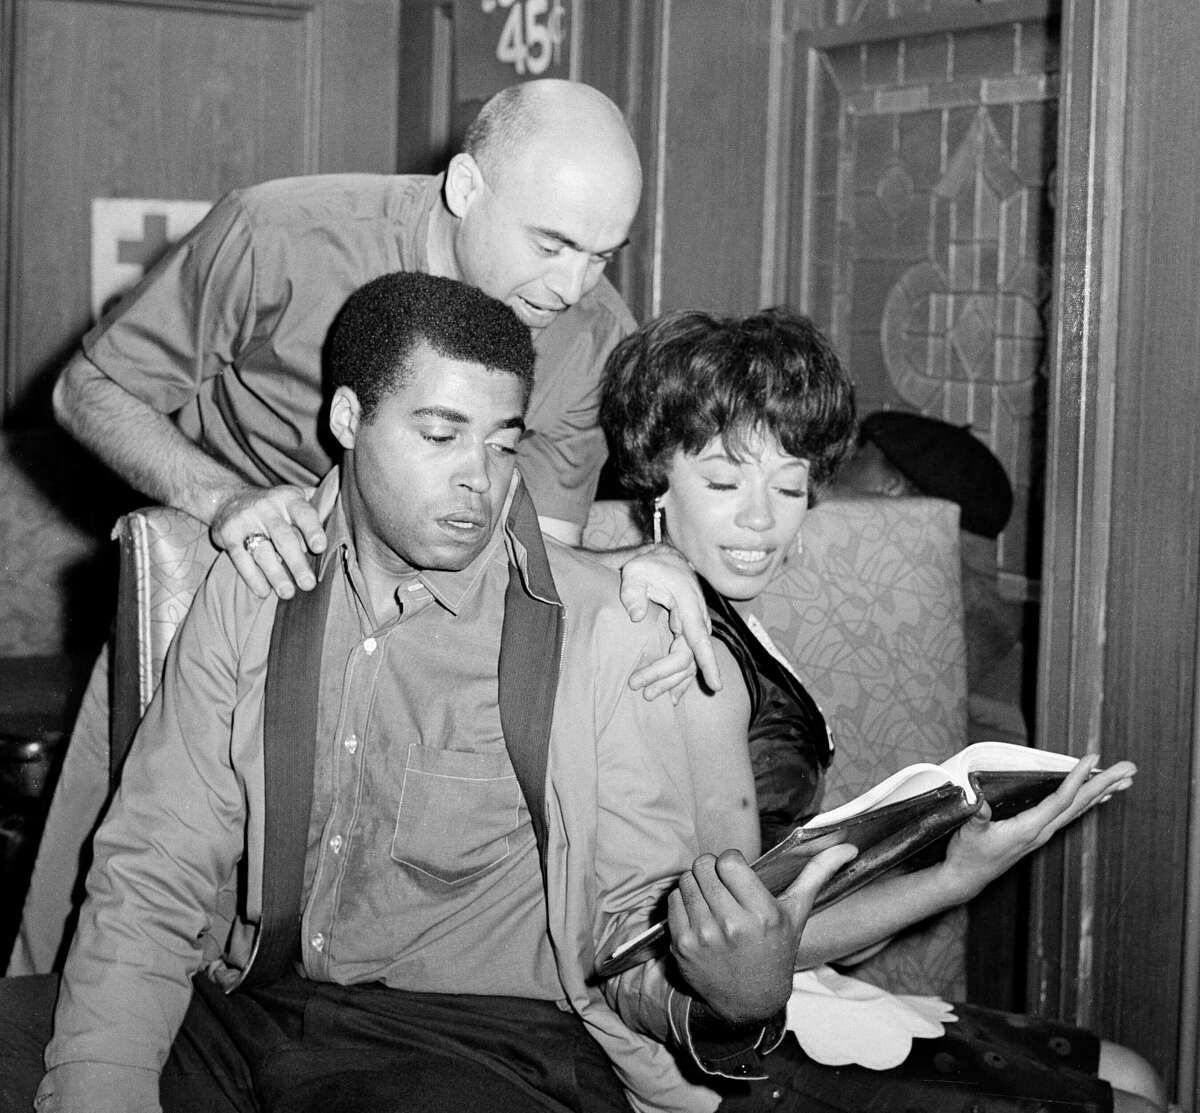 """Director Tom Gries looks over the shoulders as actors James Earl Jones and Diana Sands, go over their lines. Jones and Sands, who play the roles of young lovers in """"Who Do You Kill,"""" an episode of the television series """"East Side-West Side,"""" Sept. 25, 1963. Here, Jones, as Joe, and Sands as Ruth, appear in a scene in a bar in which Ruth works. (AP Photo/Ruben Goldberg)"""